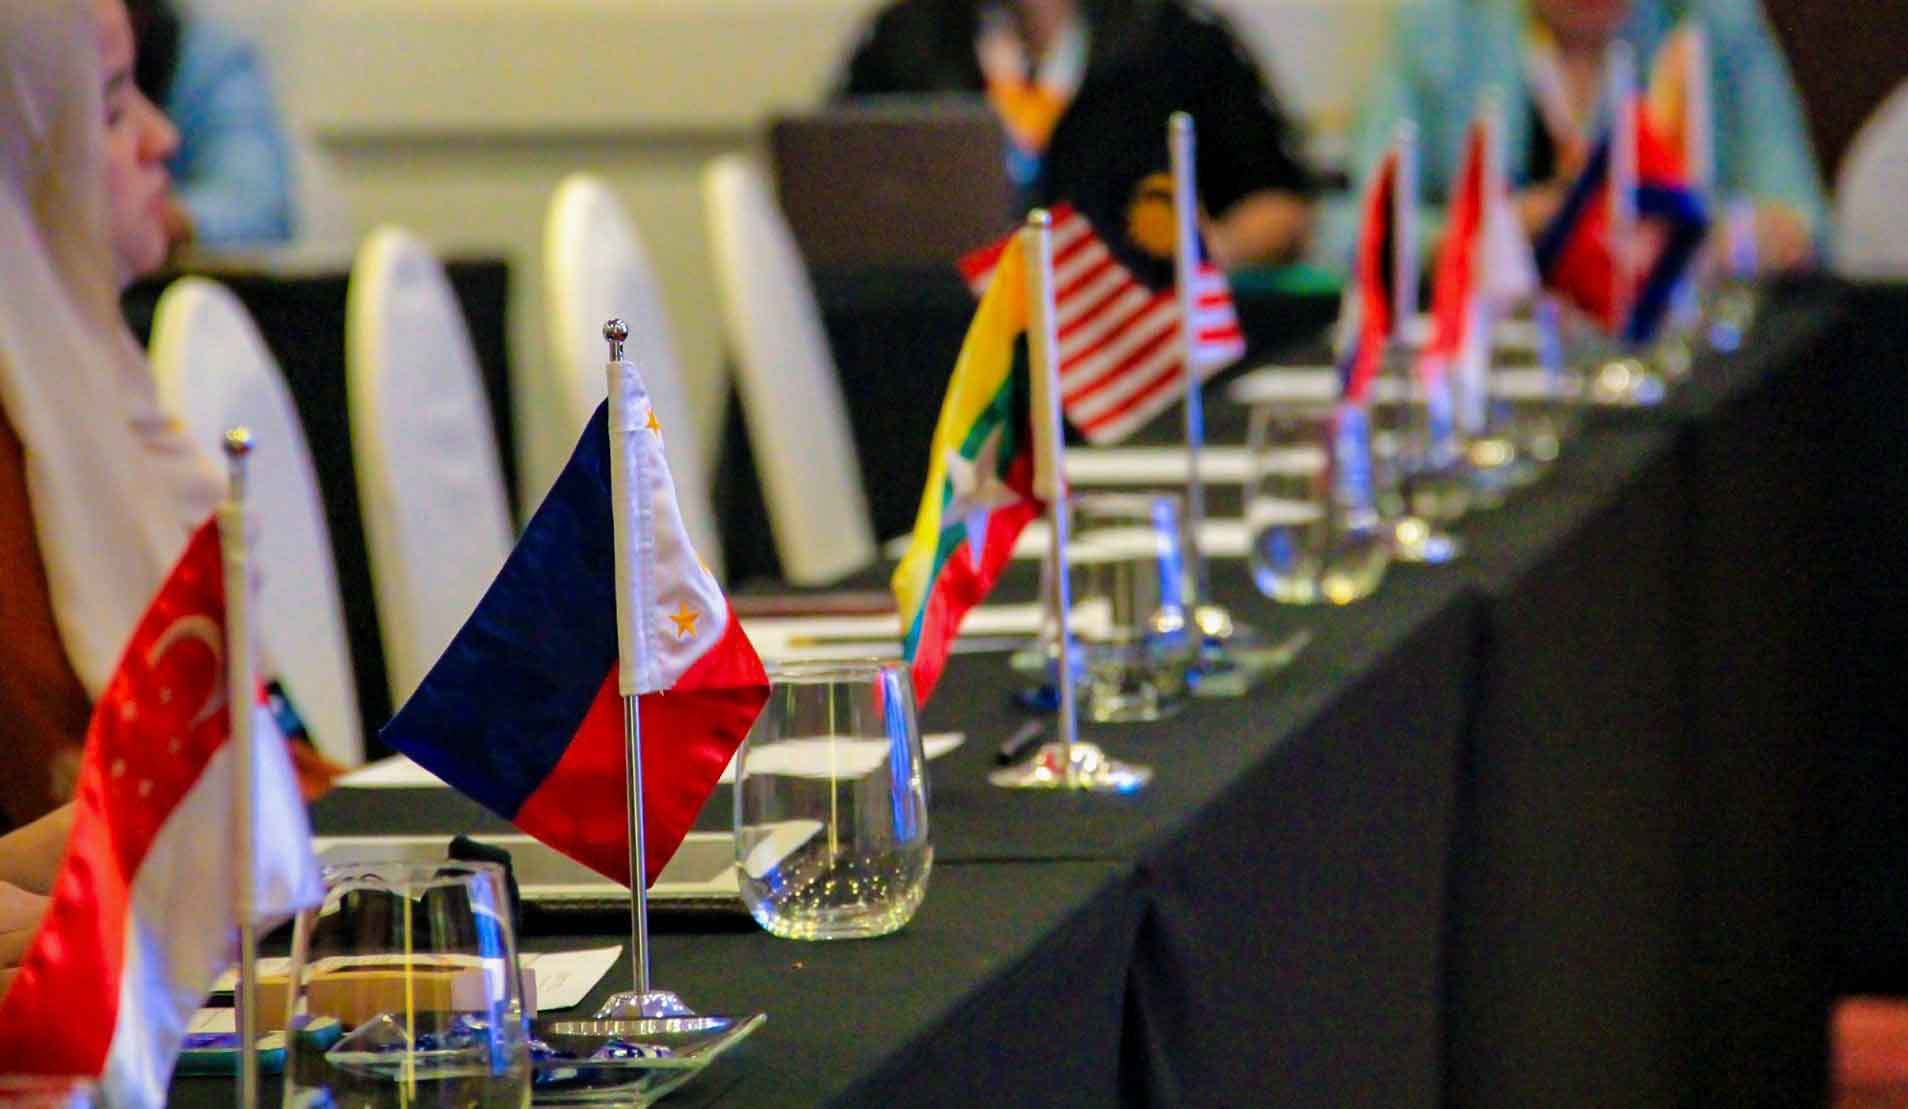 Top 3 Reasons Senior High School Students Should Participate in Model United Nations